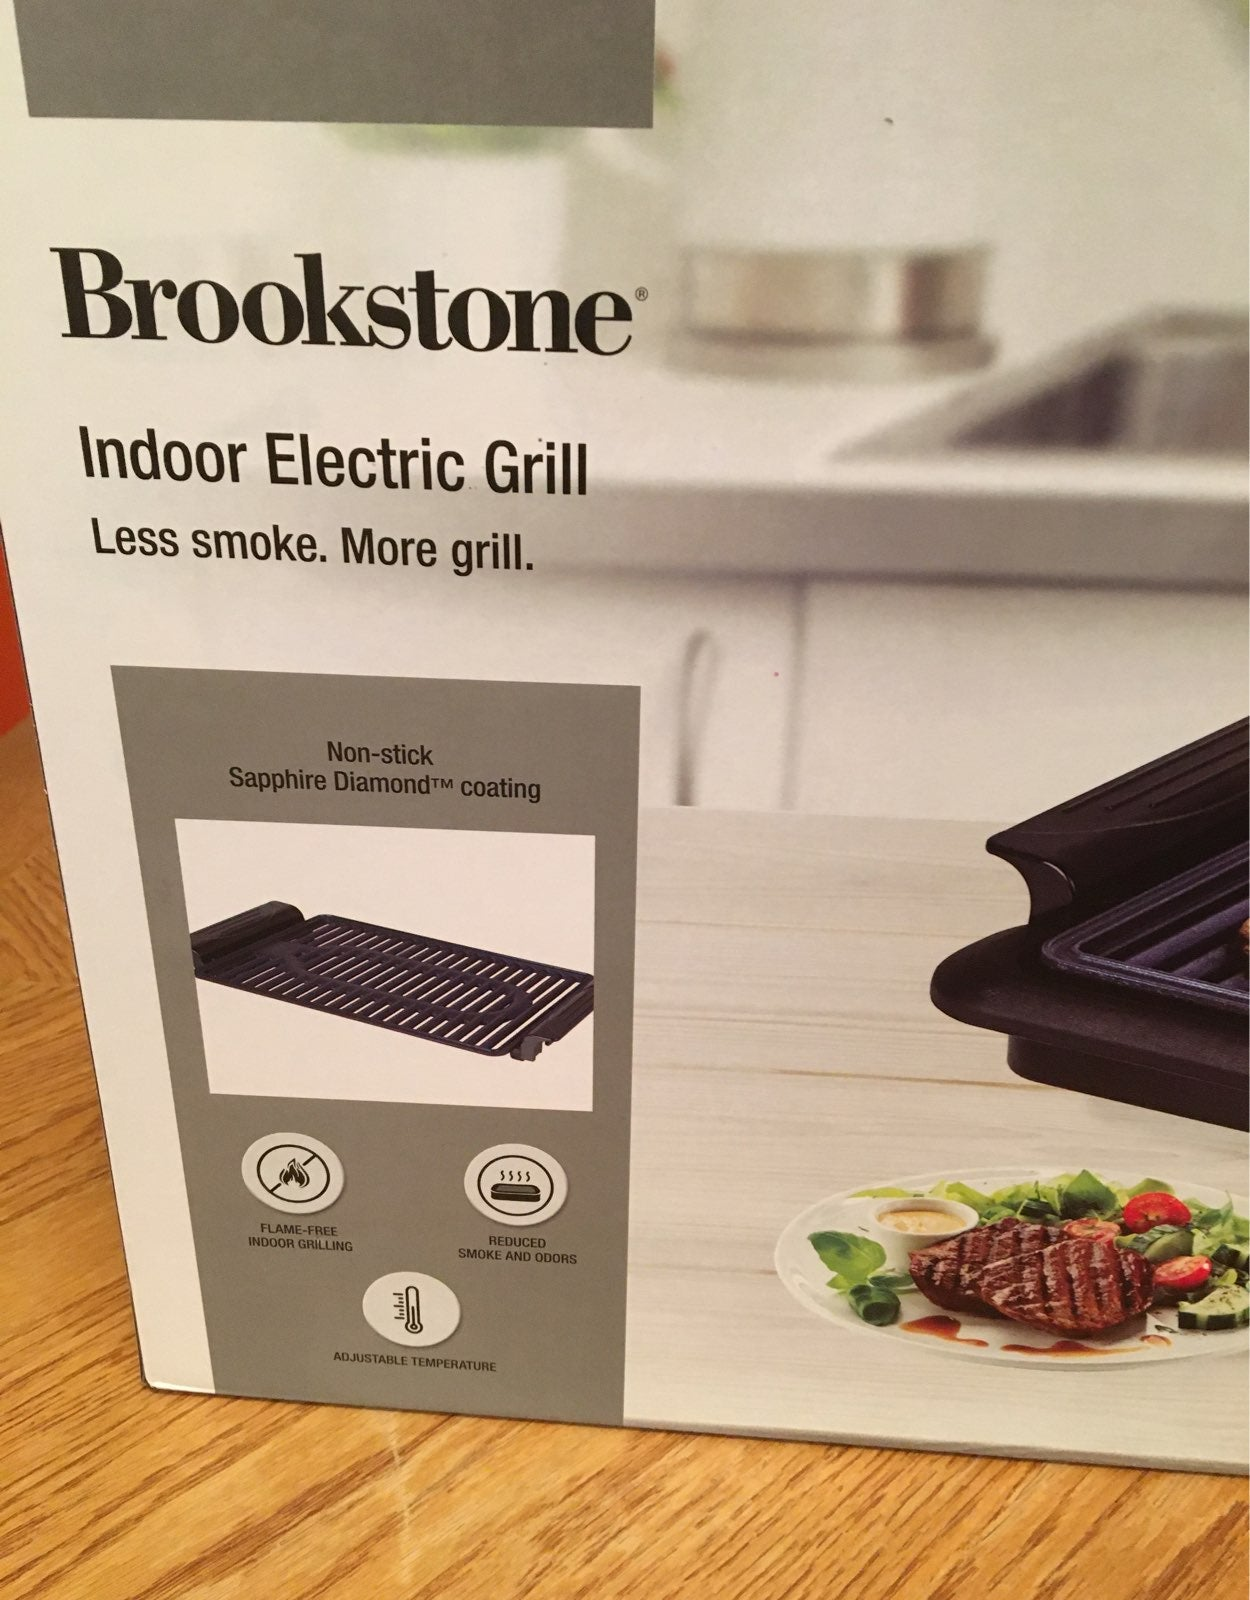 Brookstone indoor electric grill